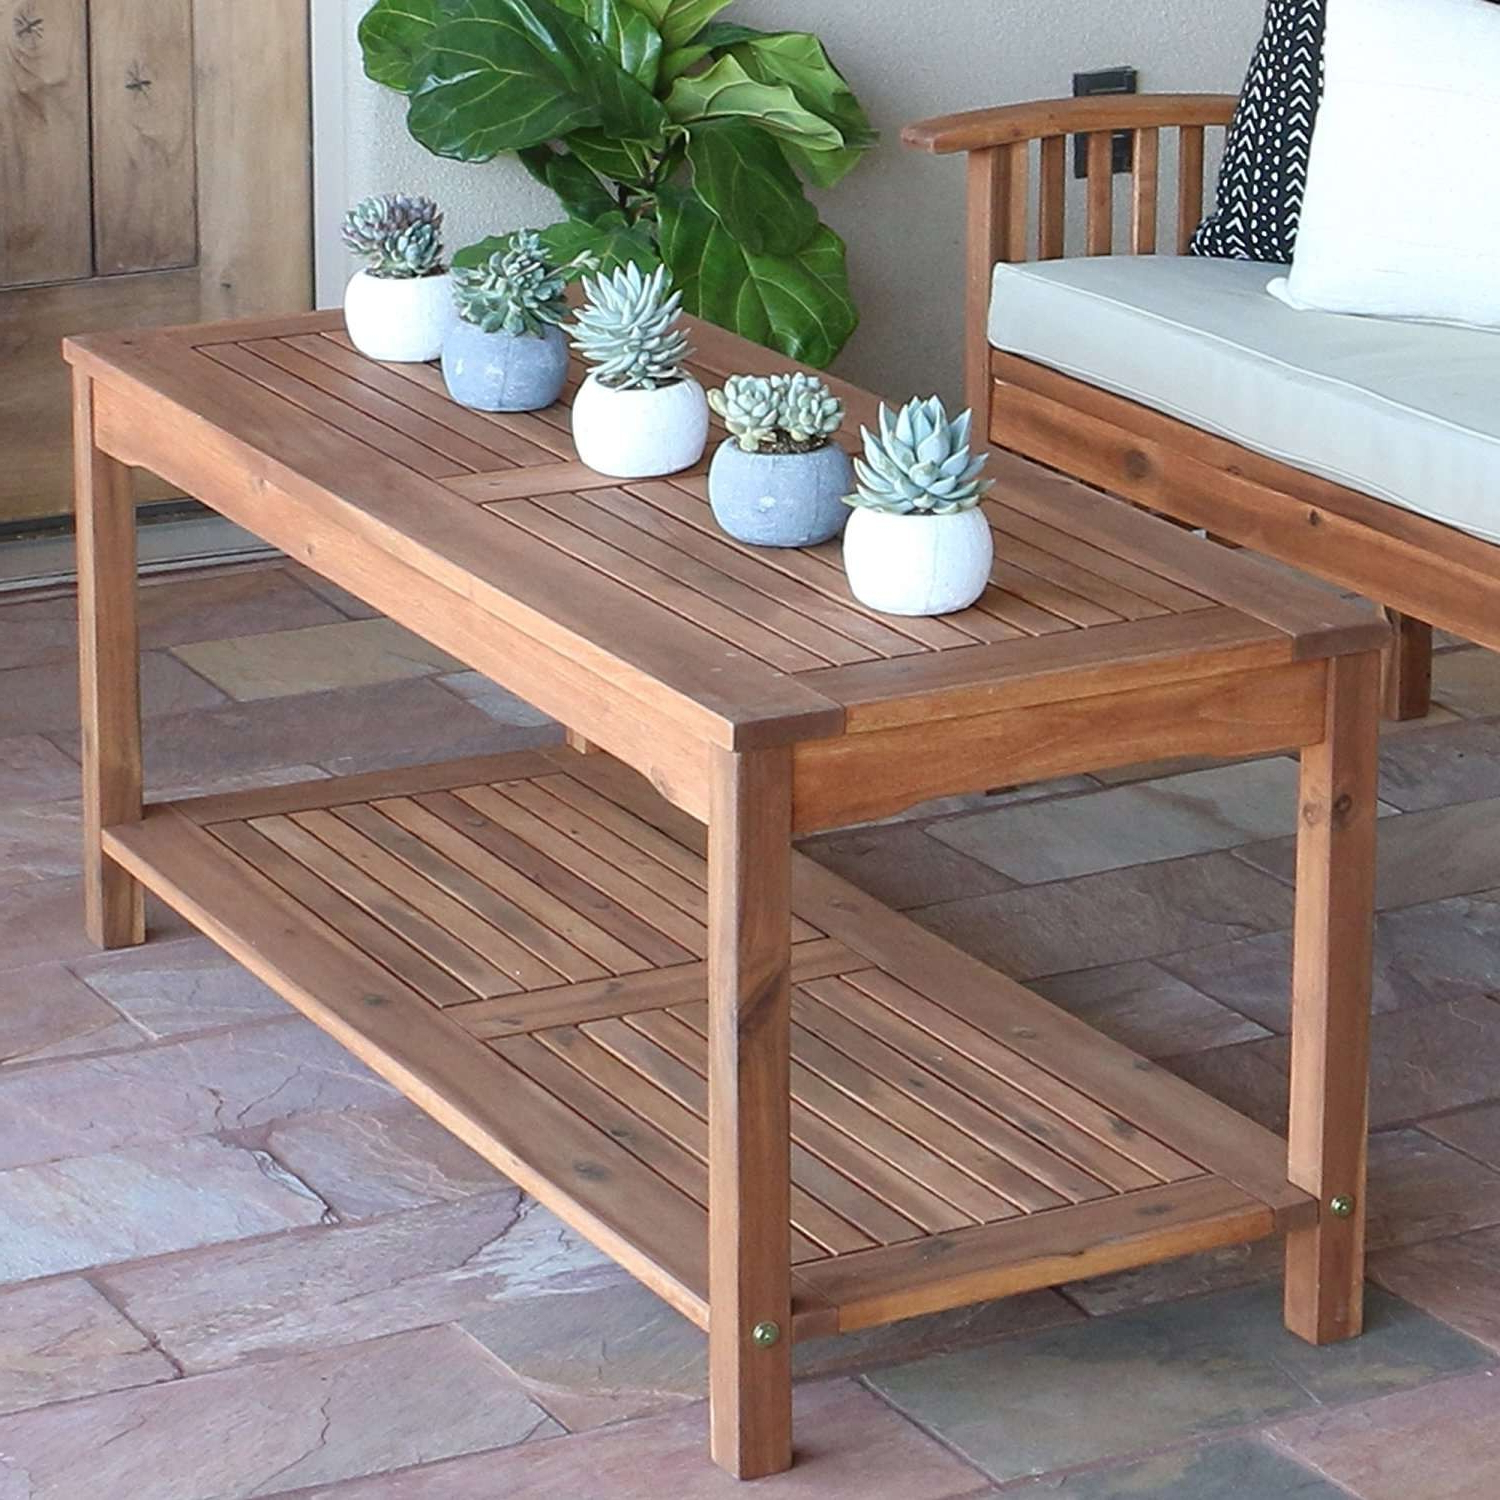 9 Crate And Barrel Concrete Coffee Table Gallery | Coffee Tables Ideas Within Parsons Concrete Top & Brass Base 48X16 Console Tables (View 2 of 20)